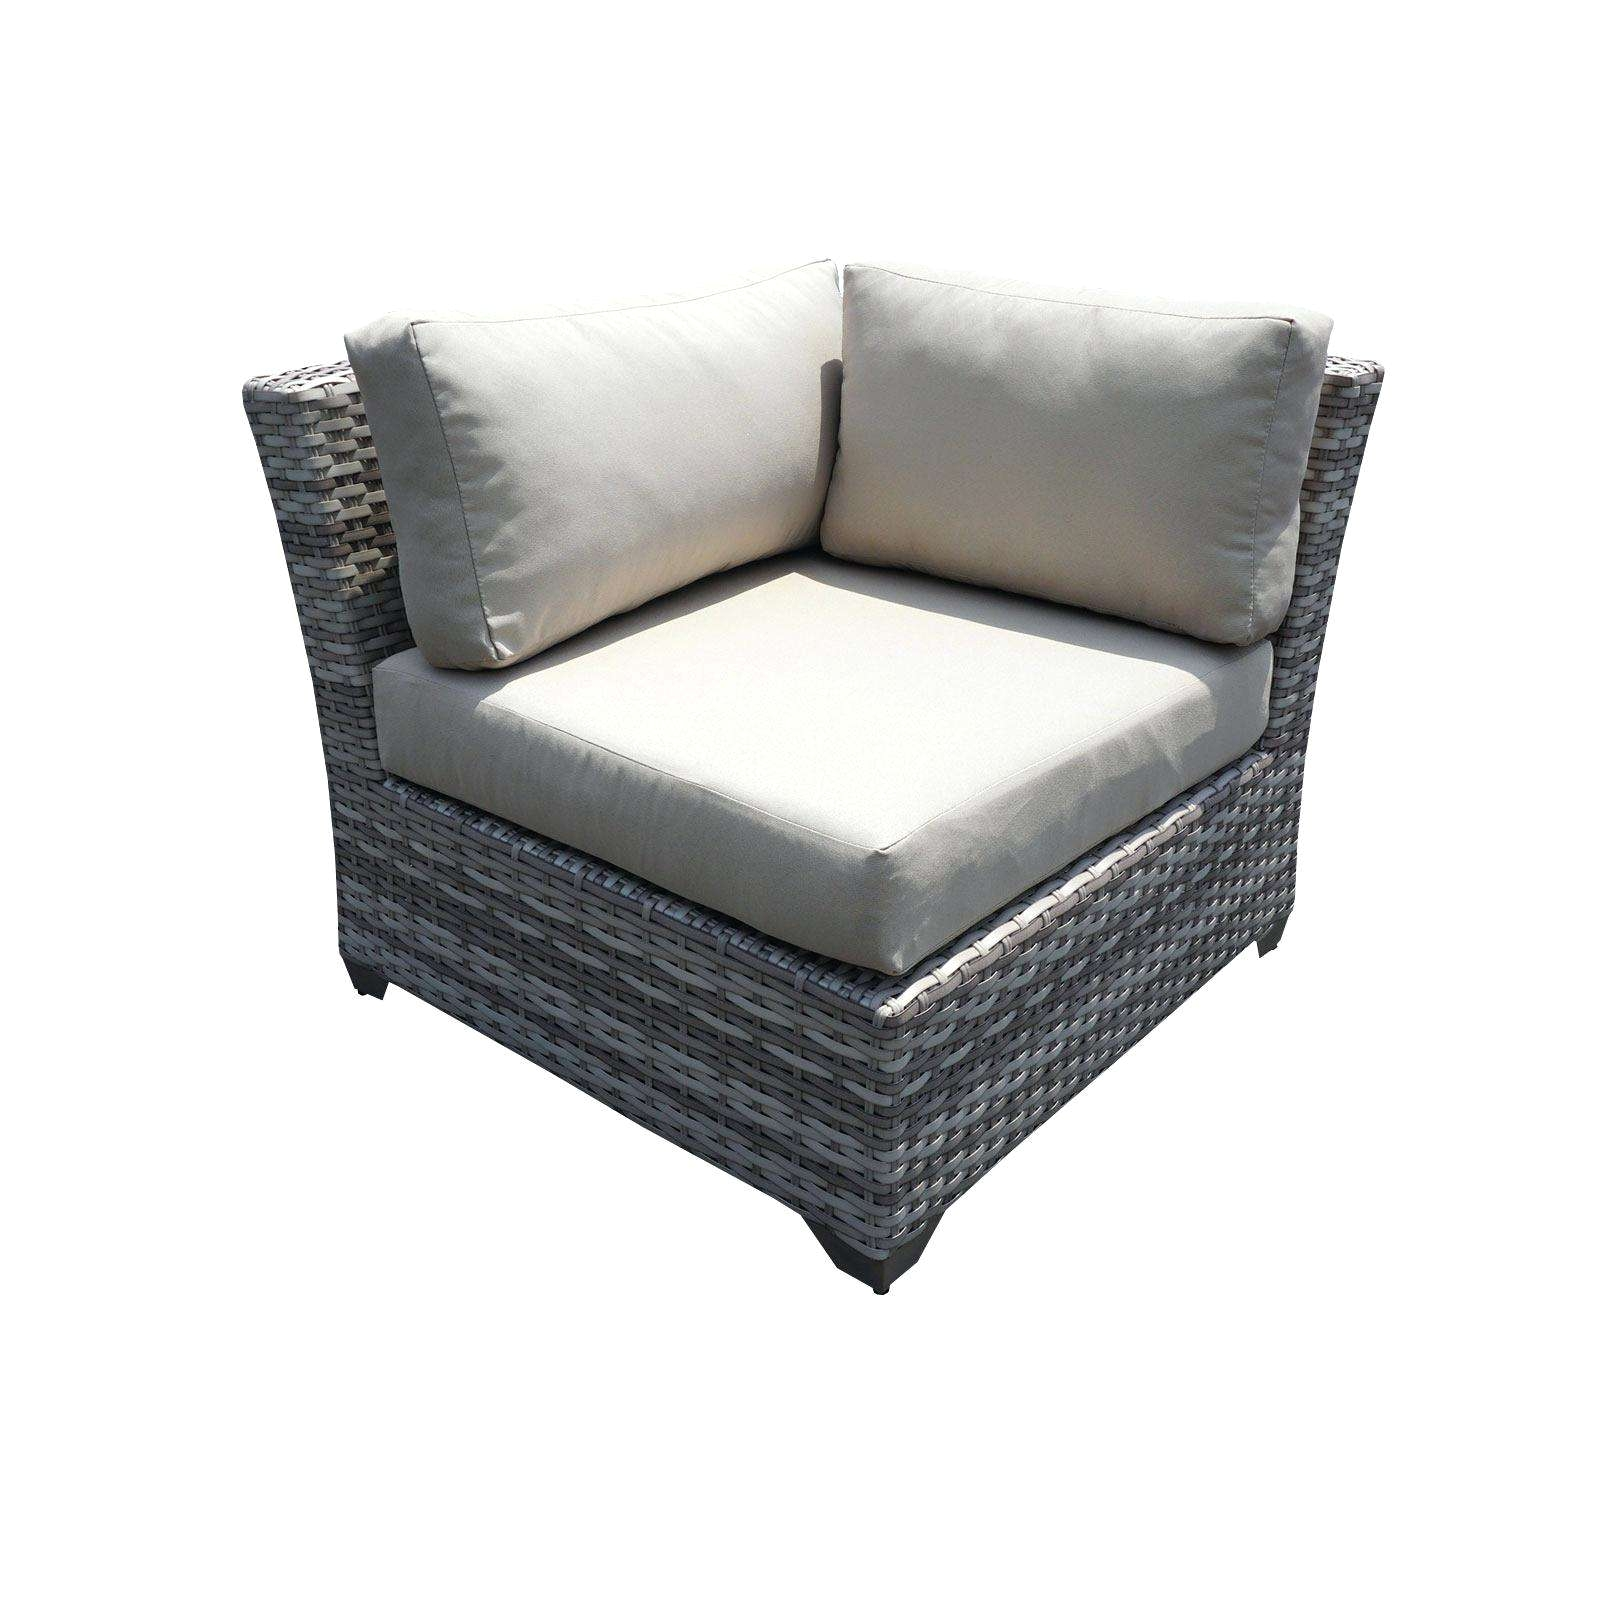 wicker chair for sale folding saucer moon outdoor rattan wingback sofa 0d patio chairs replacement